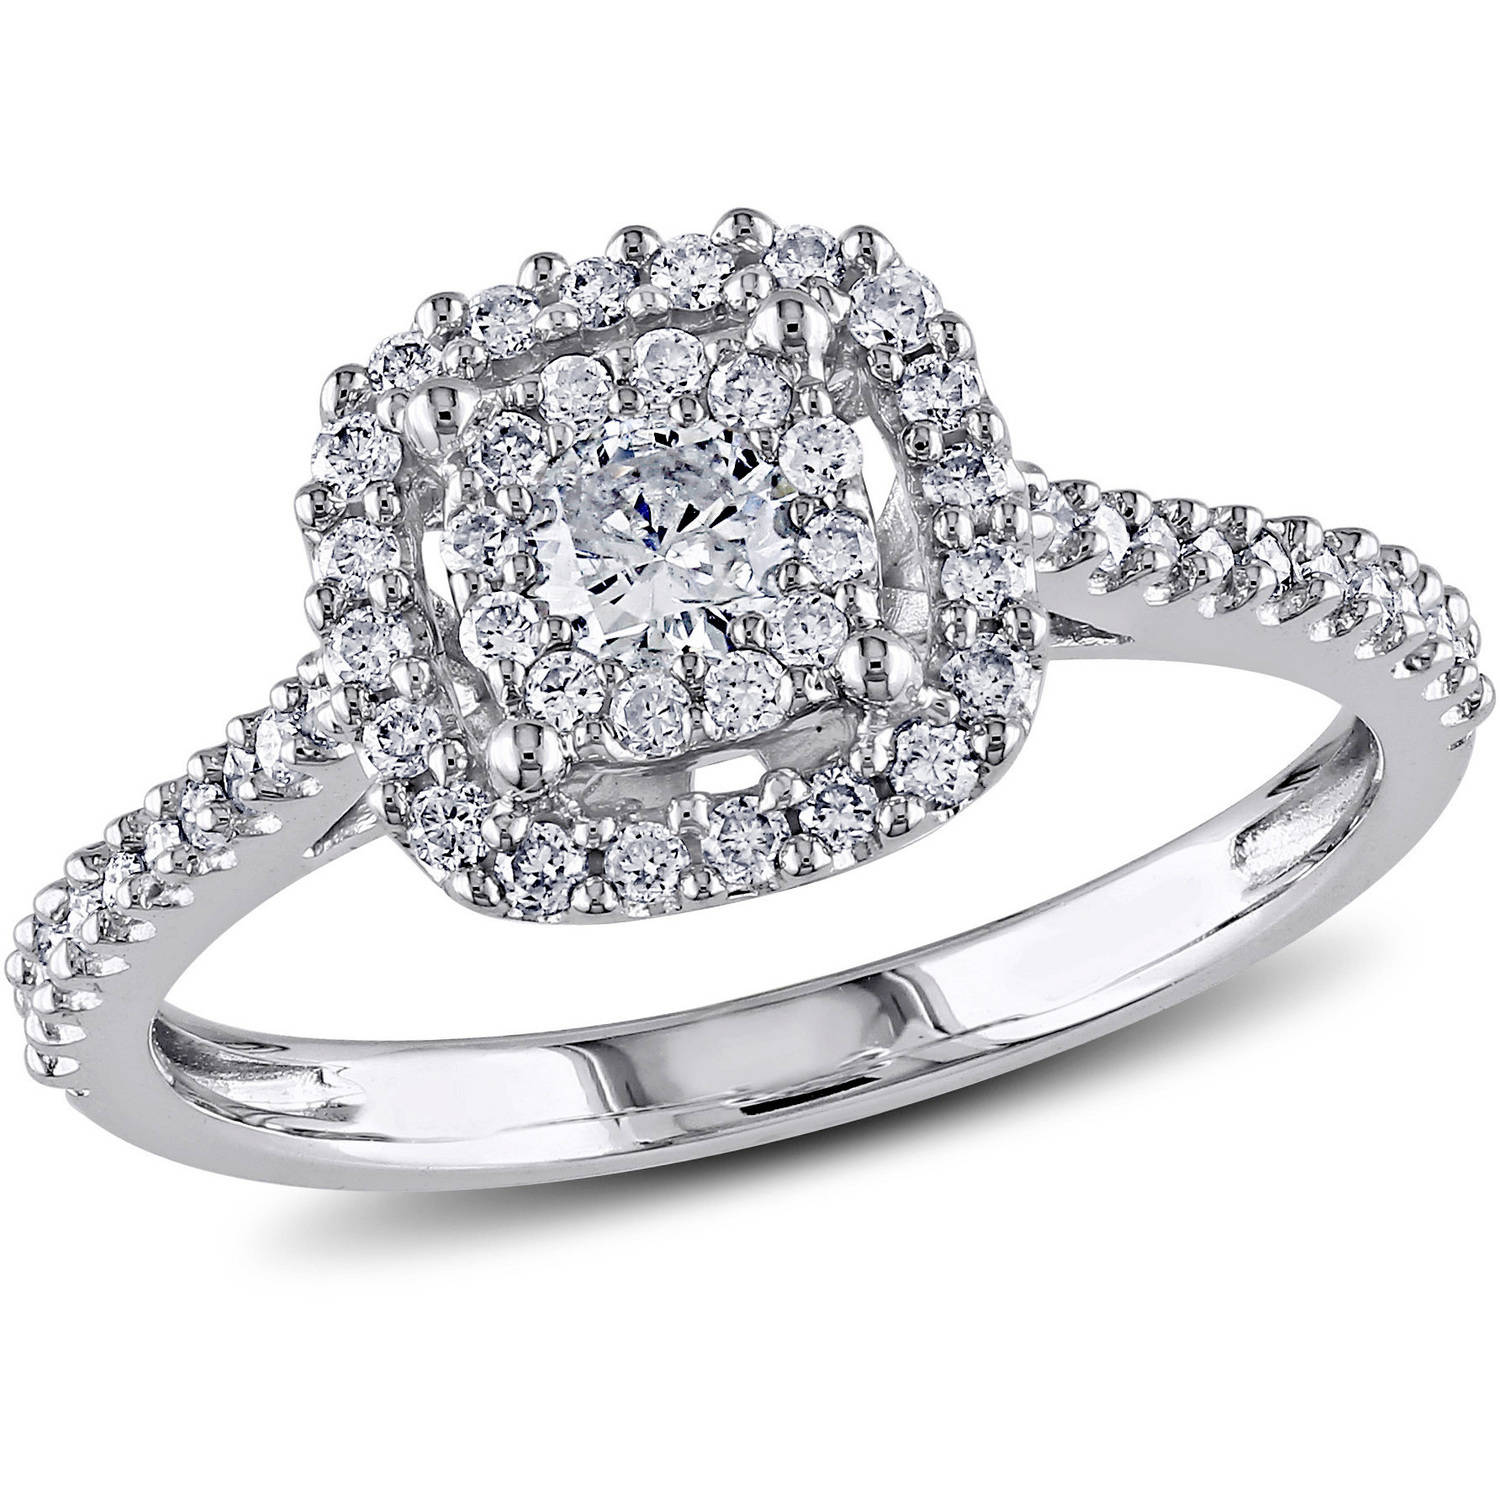 Tire Wedding Rings >> Miabella - Miabella 1/2 Carat T.W. Certified Diamond 10kt White Gold Double Halo Engagement Ring ...